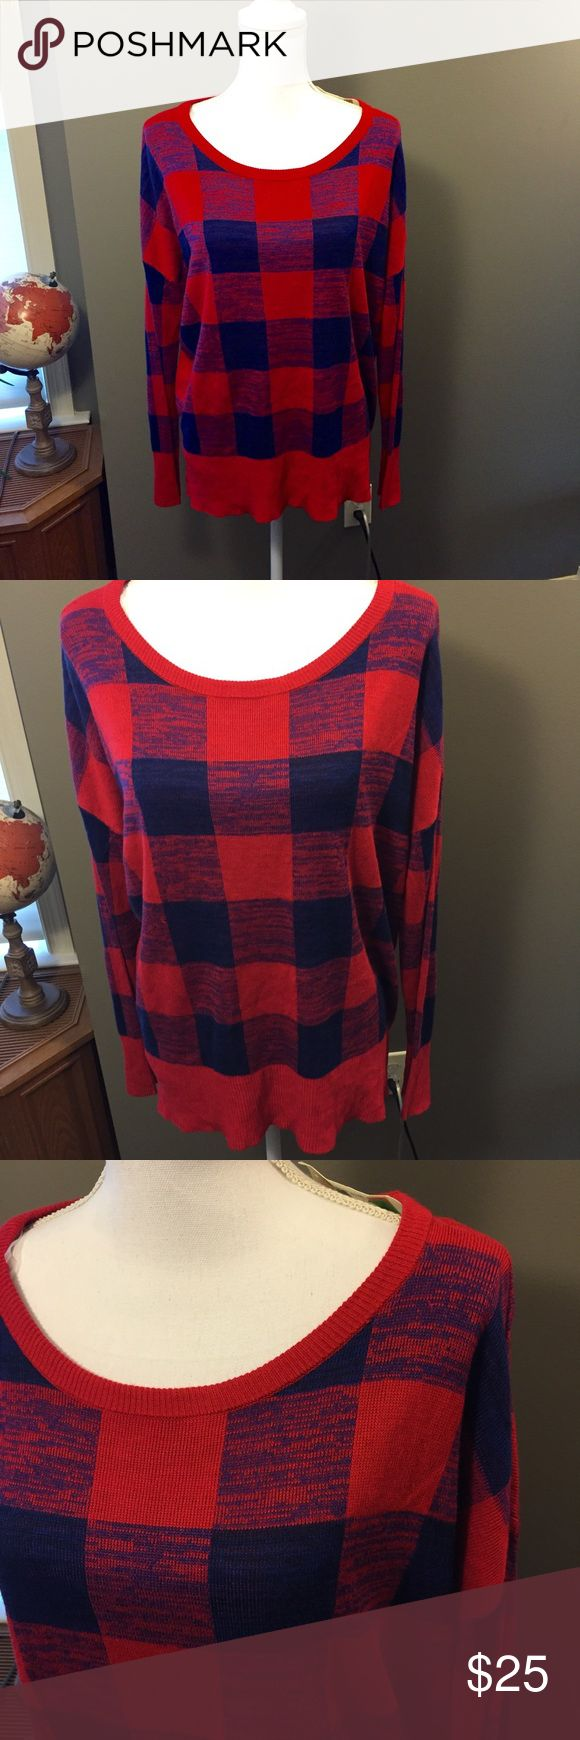 🆕 Canton River Blue Red Blue Plaid Sweater NWT Brand new with tags! Thank you for looking! Size XL canyon river blues Sweaters Crew & Scoop Necks